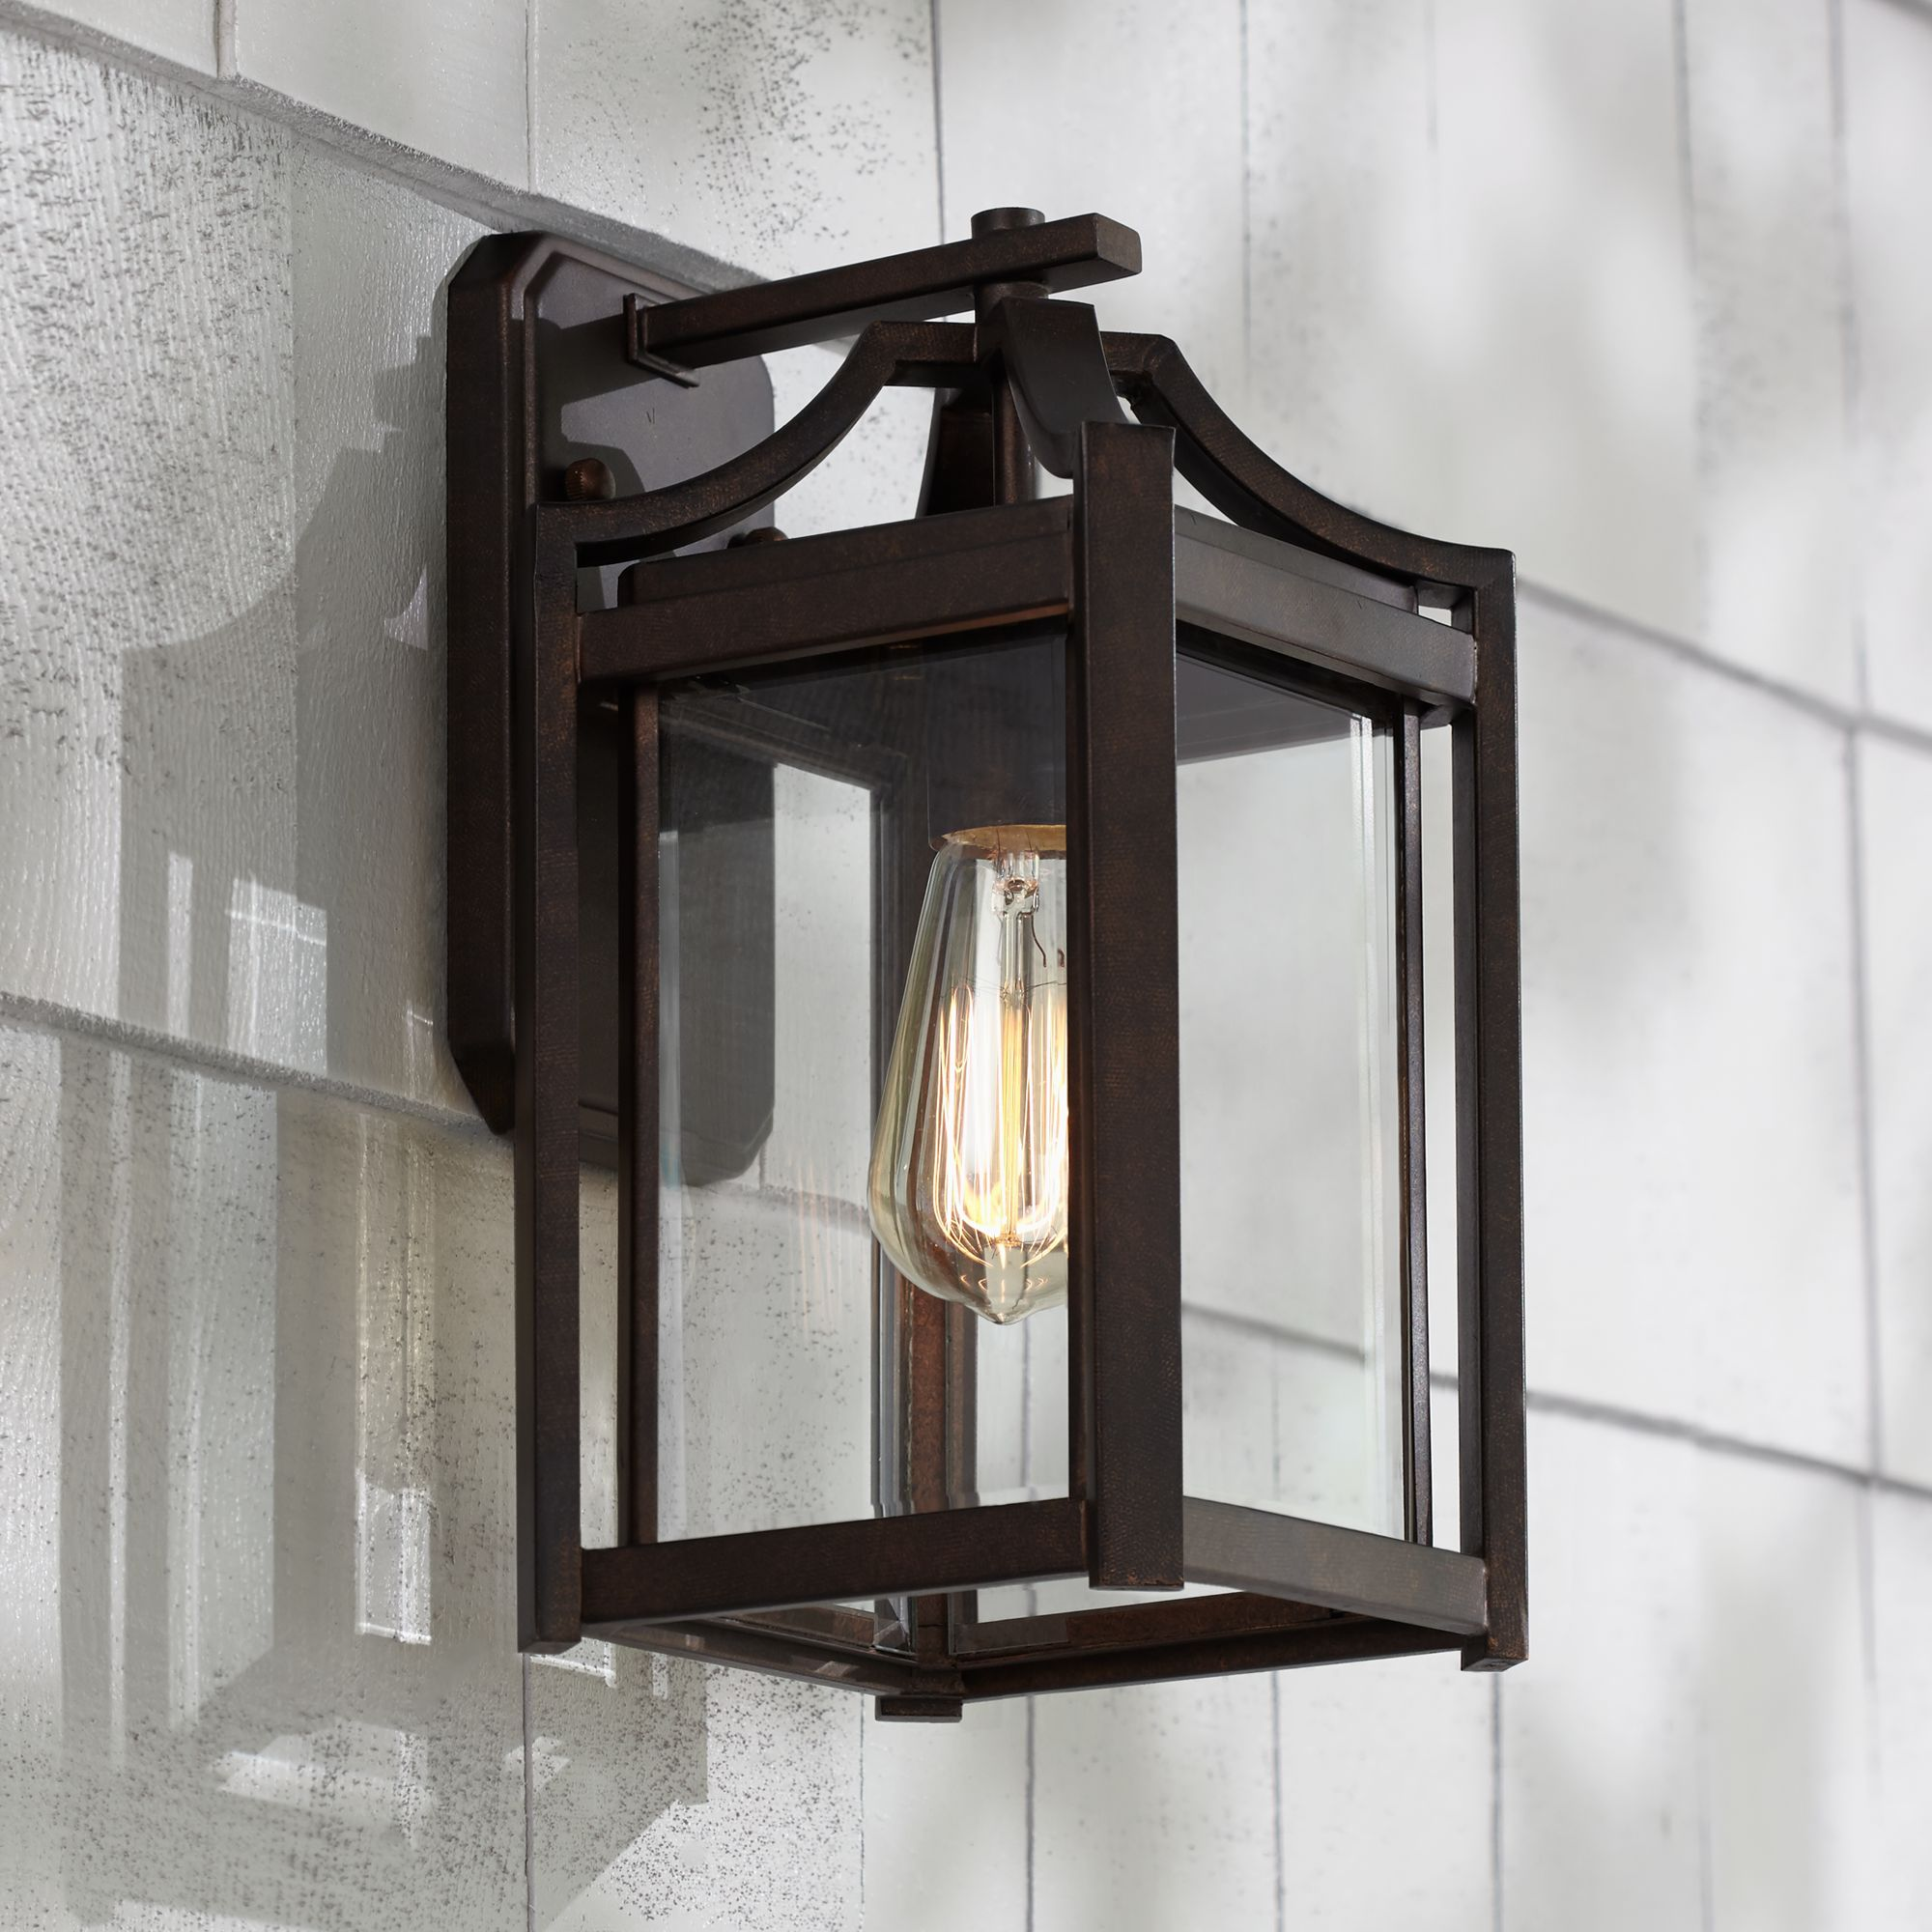 franklin iron works rustic farmhouse outdoor wall light fixture bronze 12 1 2 clear beveled glass panel for exterior house porch